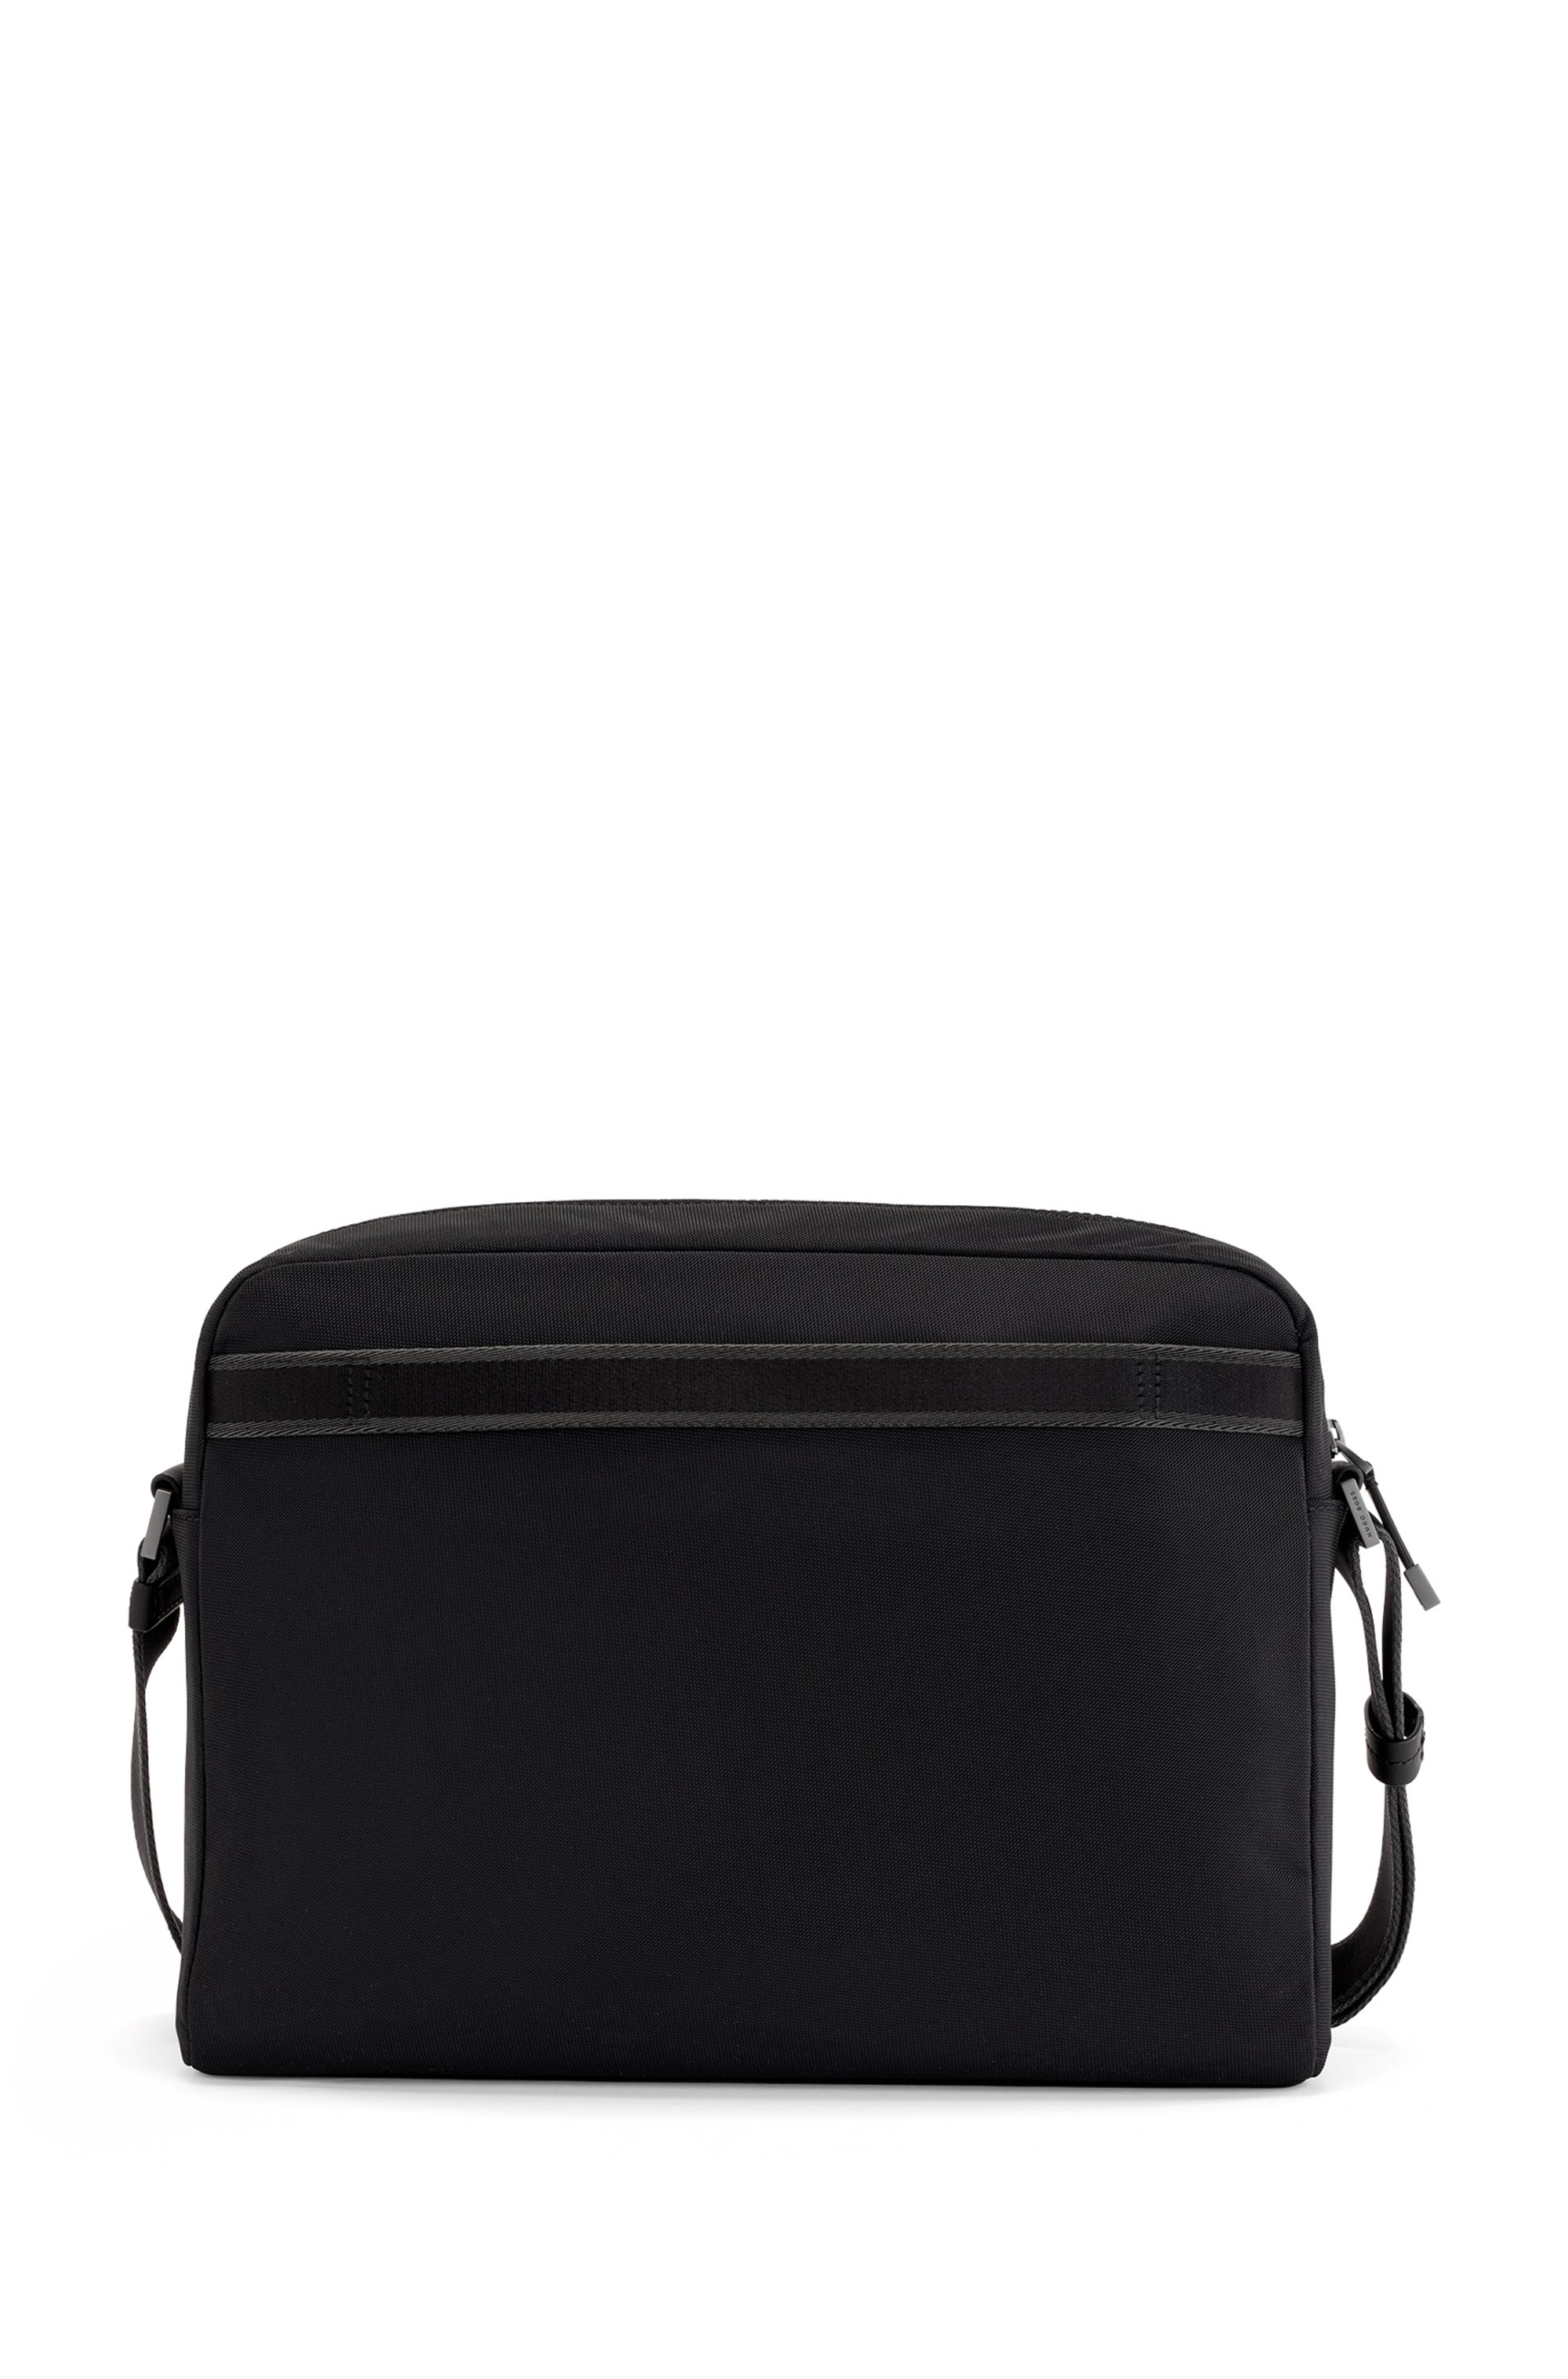 Recycled-nylon messenger bag with Italian-leather trims